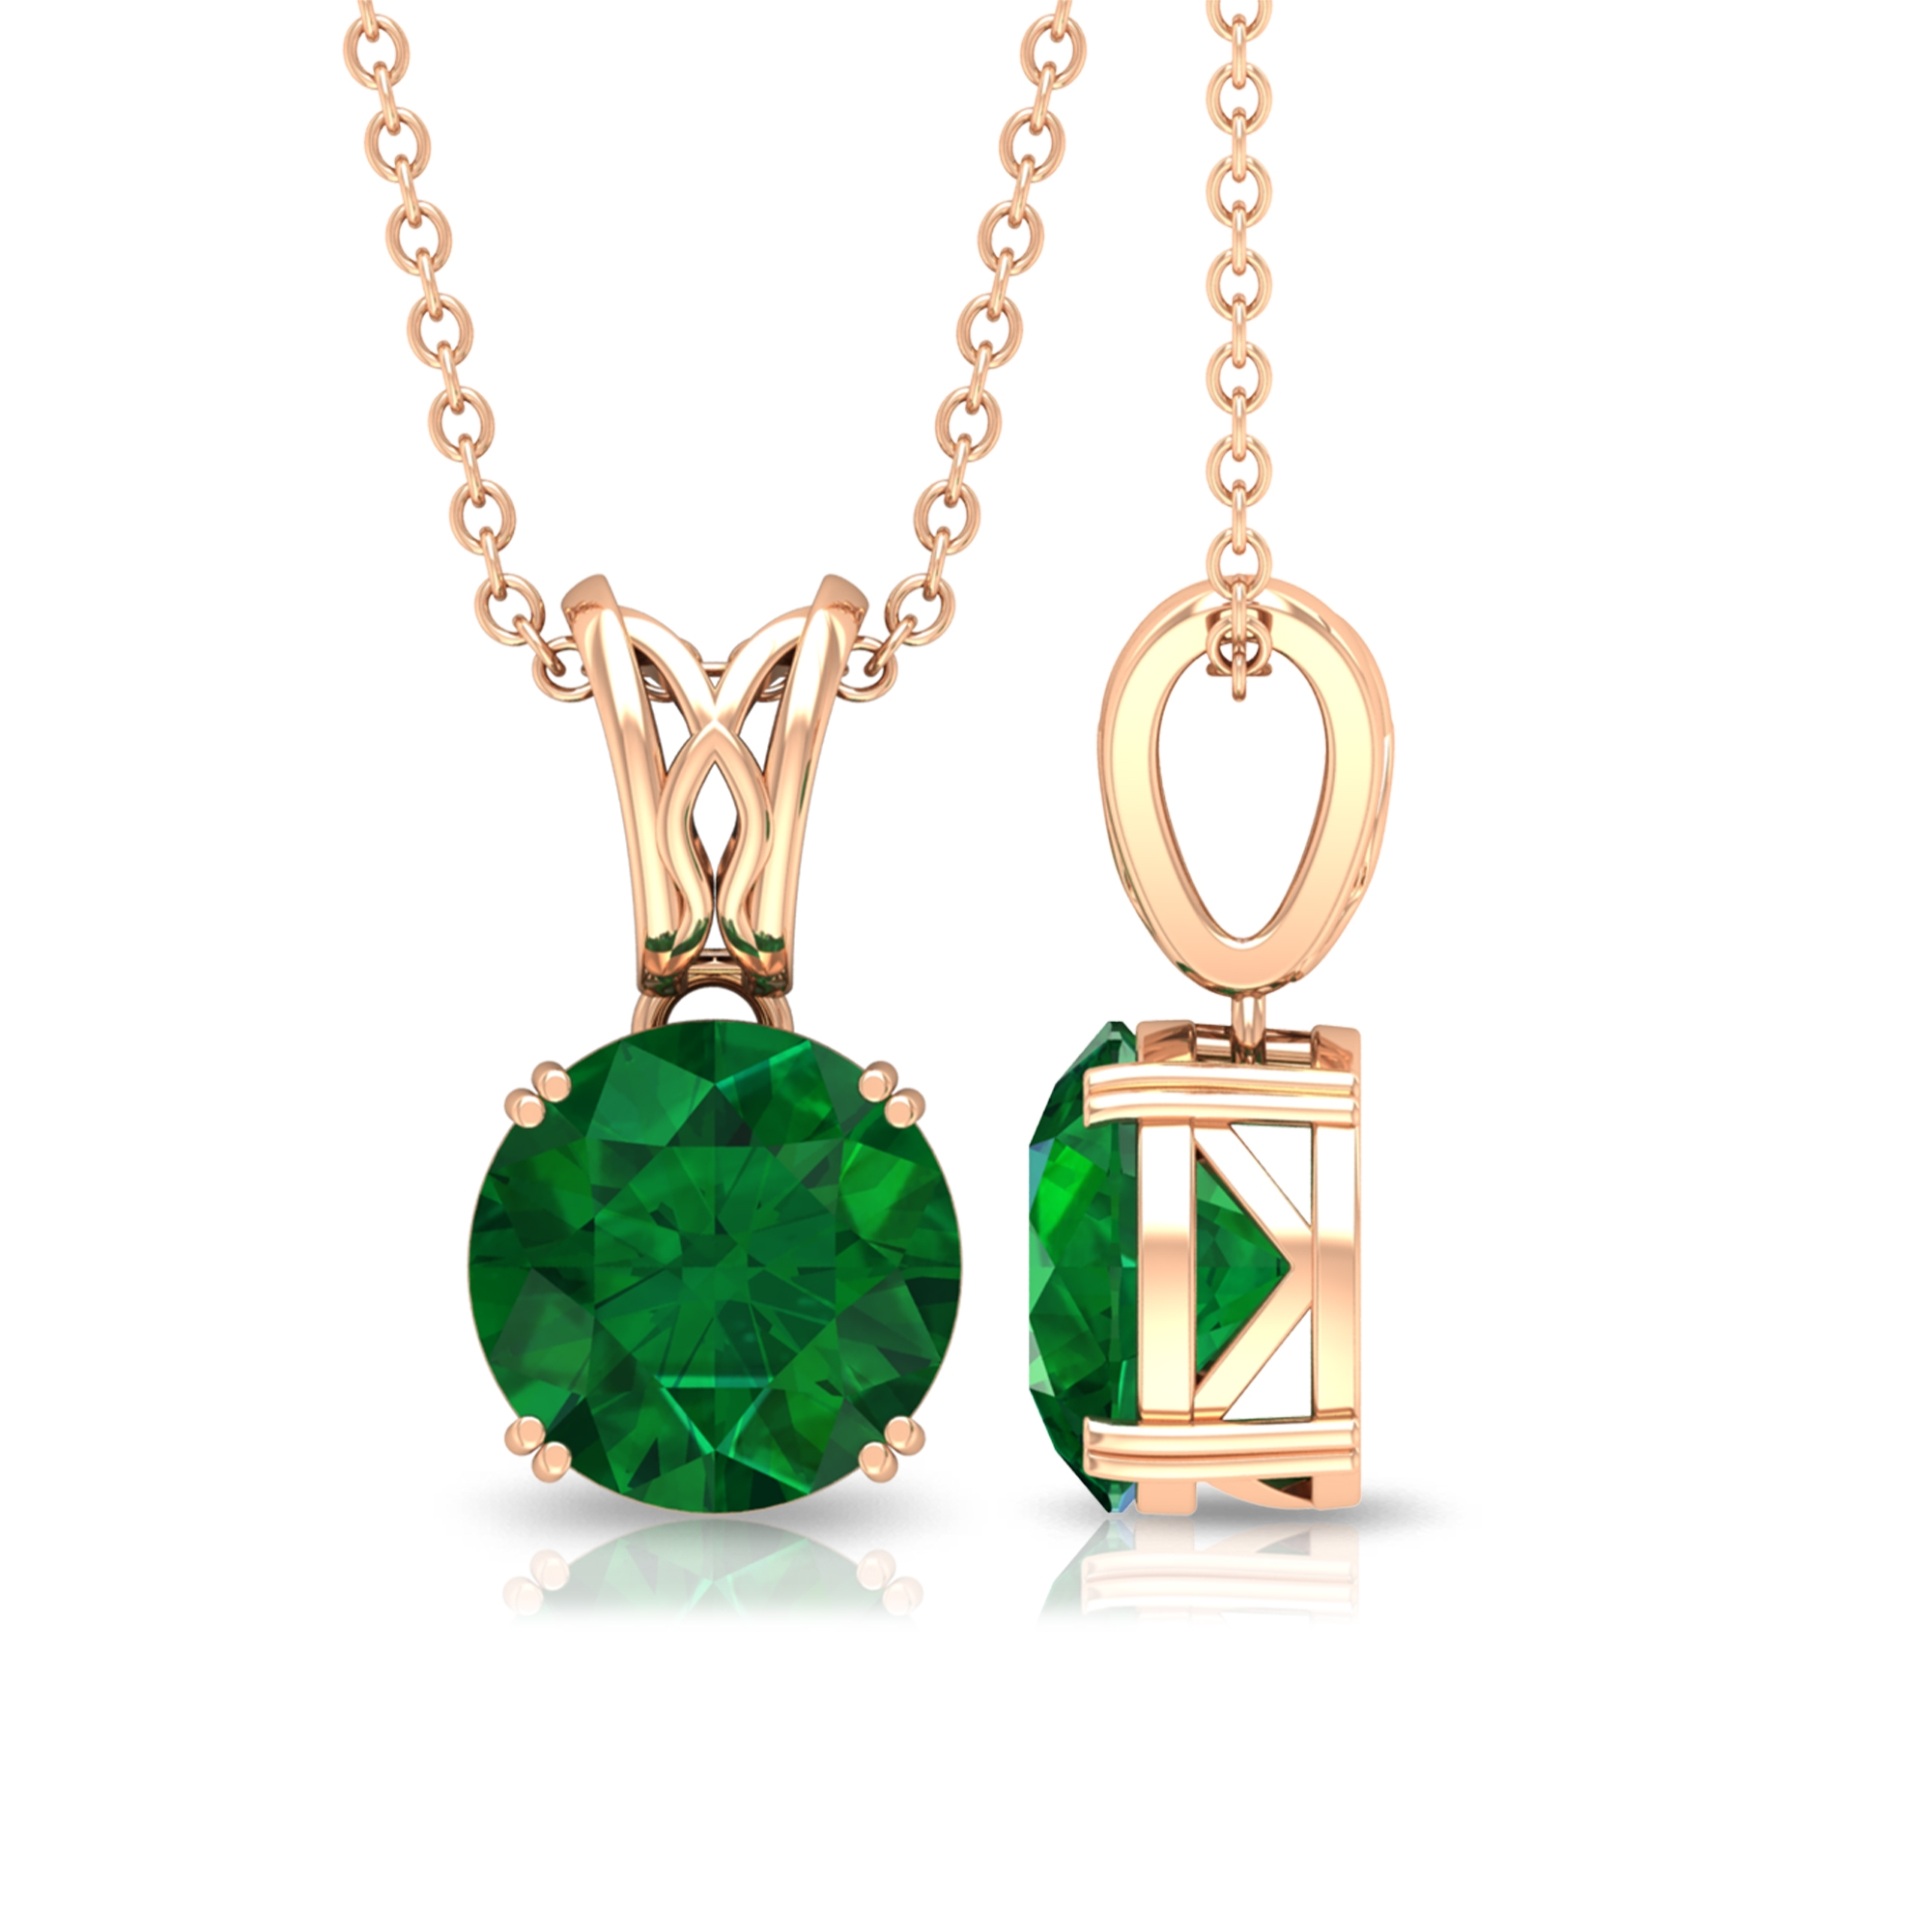 8 MM Round Cut Solitaire Emerald Pendant Necklace in Double Prong Set with Decorative Bale